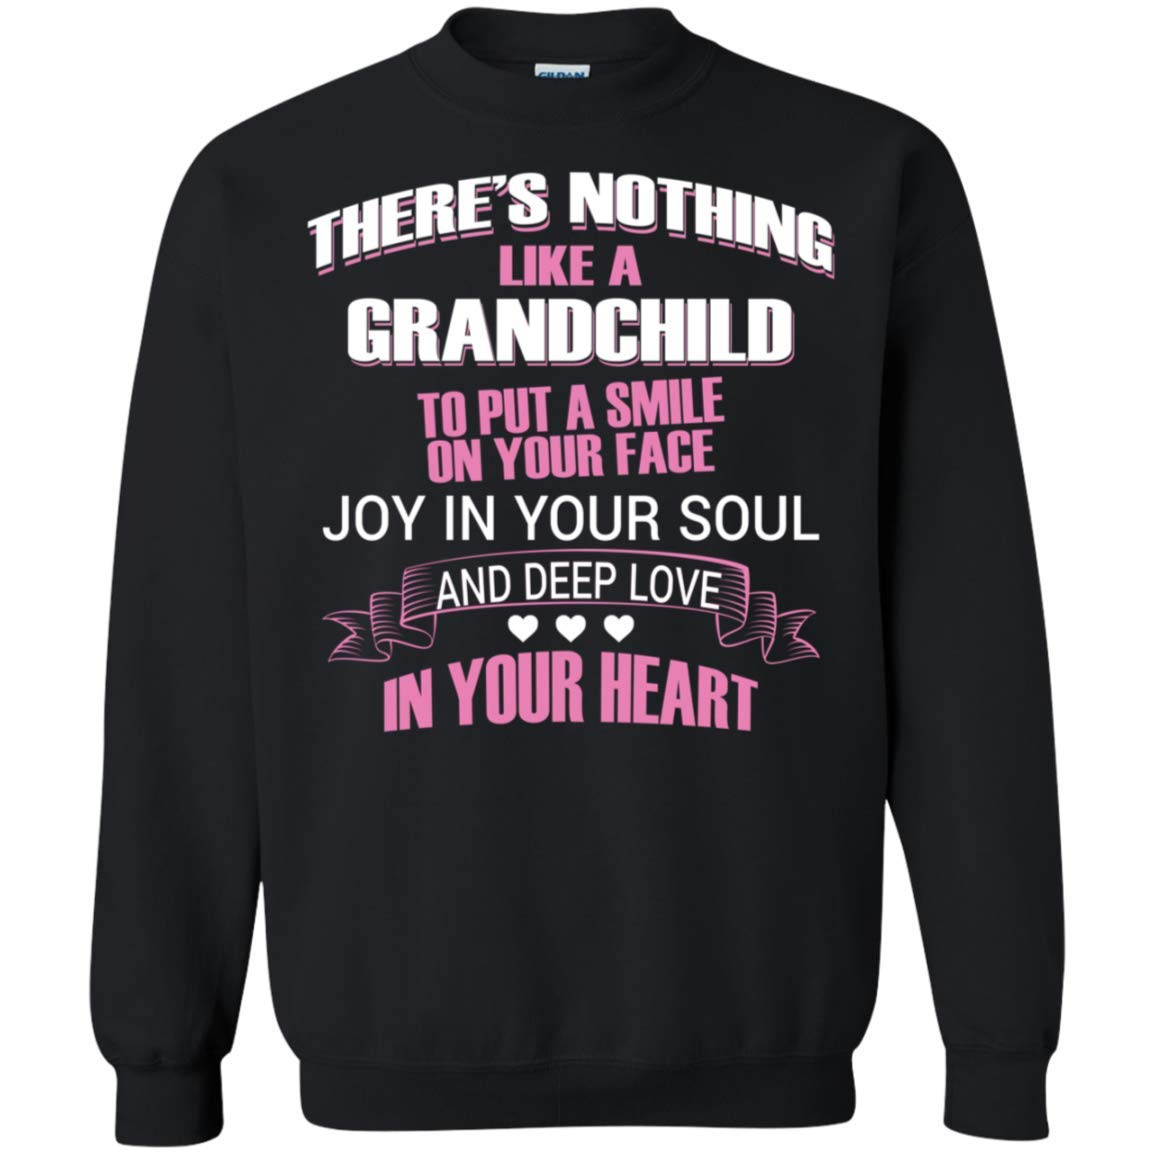 Theres Nothing Like A Grandchild to Put A Smile On Your Face FUUNY Gift Crew Neck Pullover Sweatshirt for Grandparents